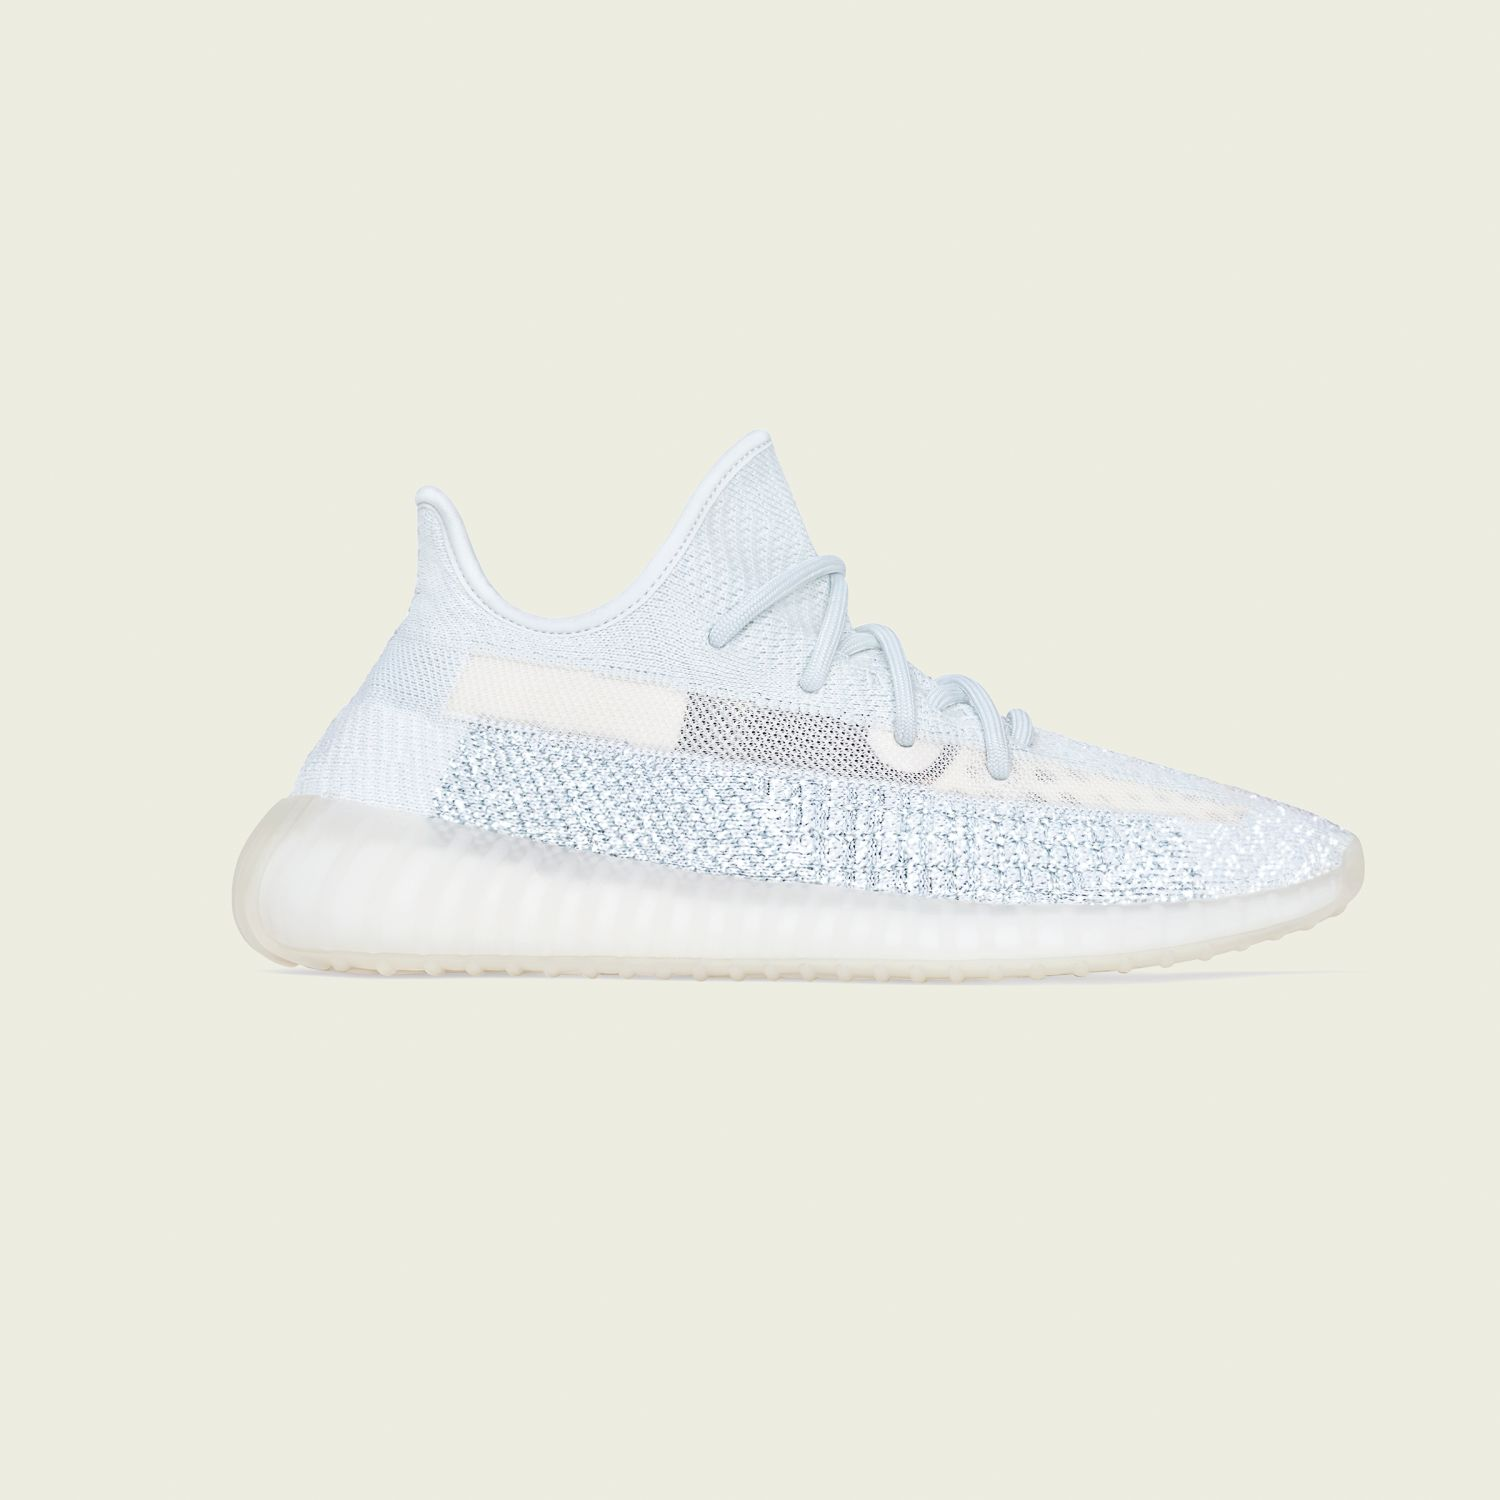 adidas-yeezy-boost-350-v2-cloud-white-fw5317-release-20190920